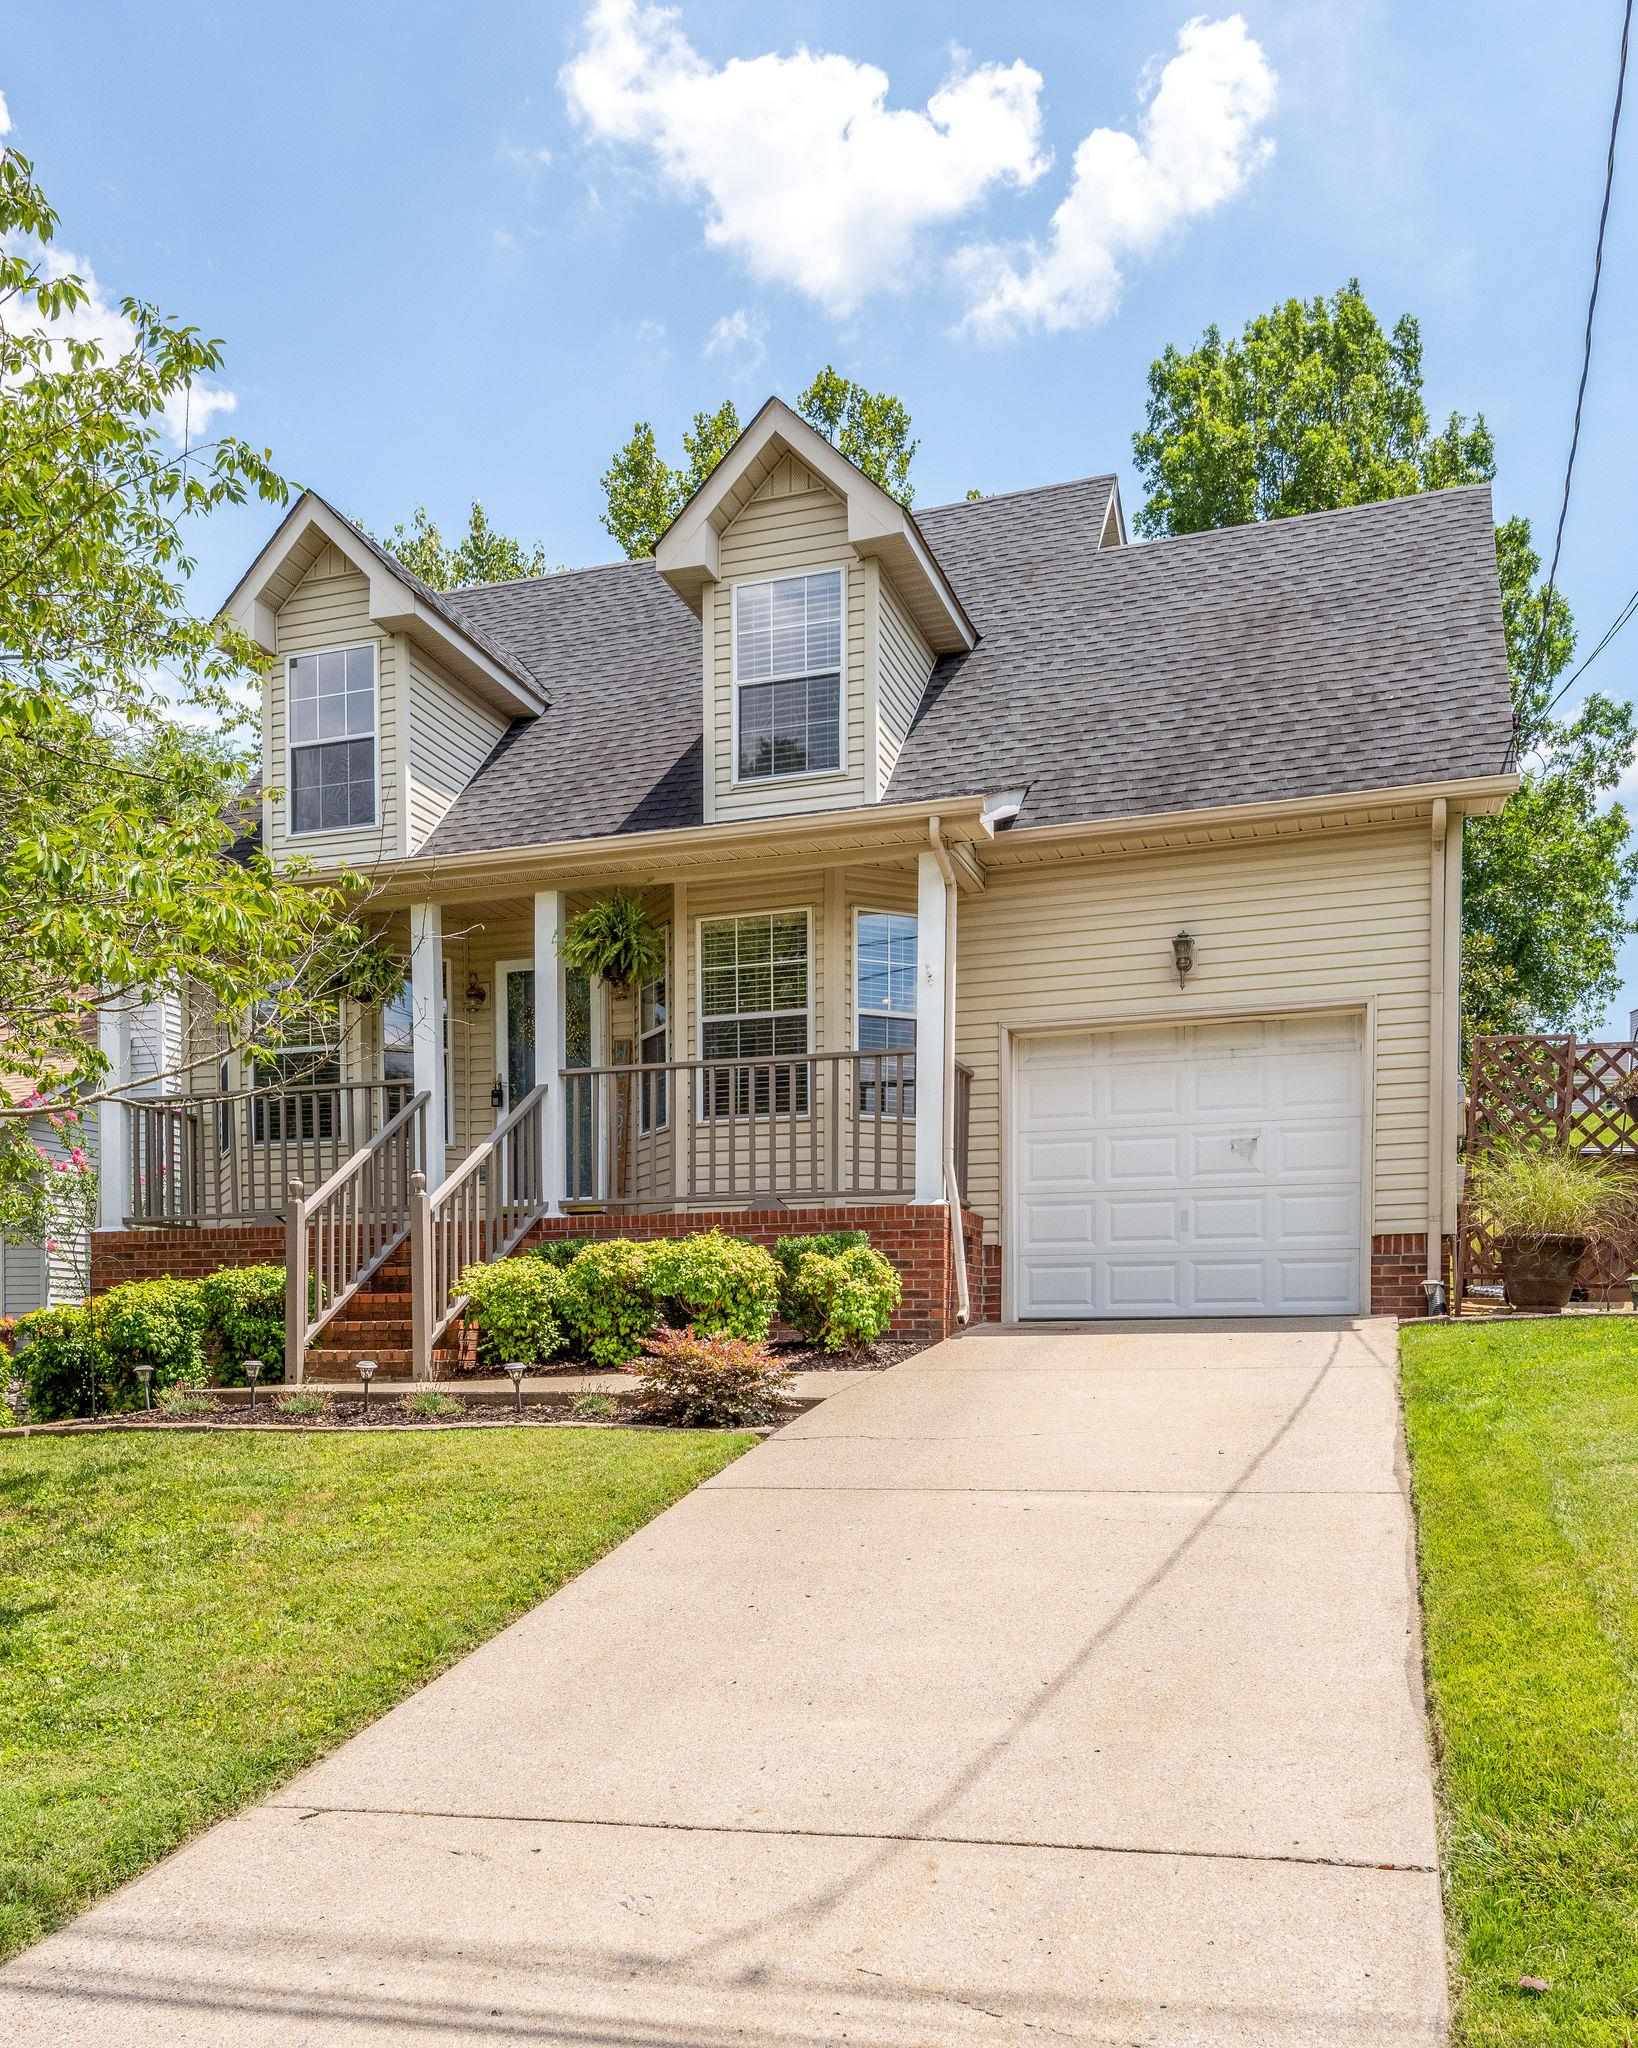 608 Maple Top Dr, Nashville-Antioch in Davidson County County, TN 37013 Home for Sale